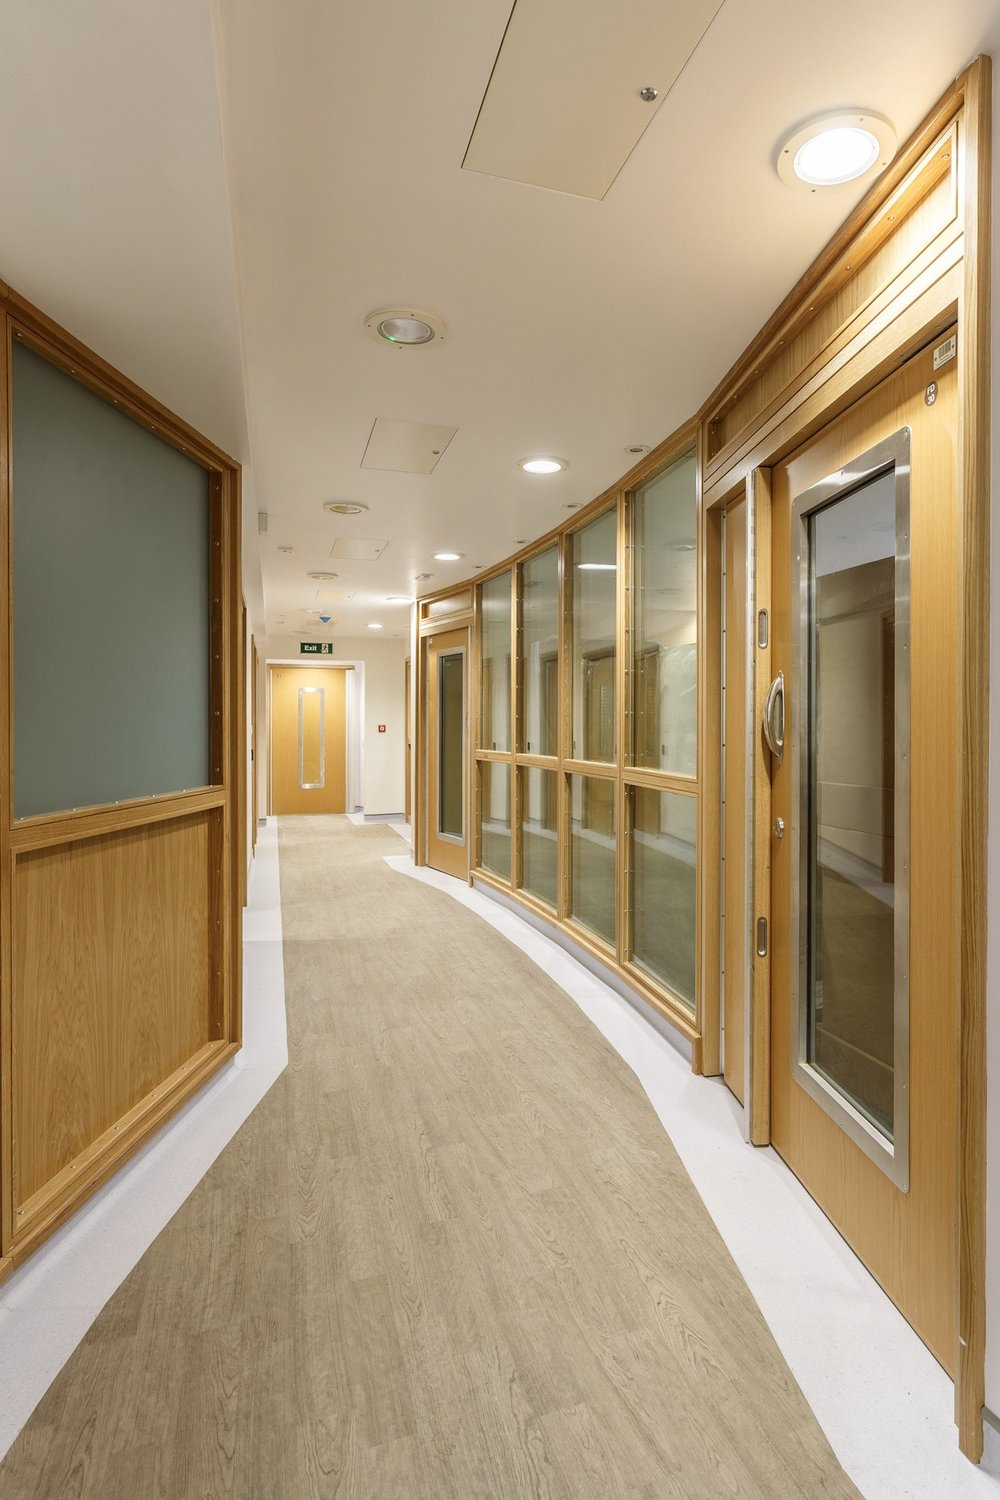 Another view of the corridor with the doors, frame and glazed screen